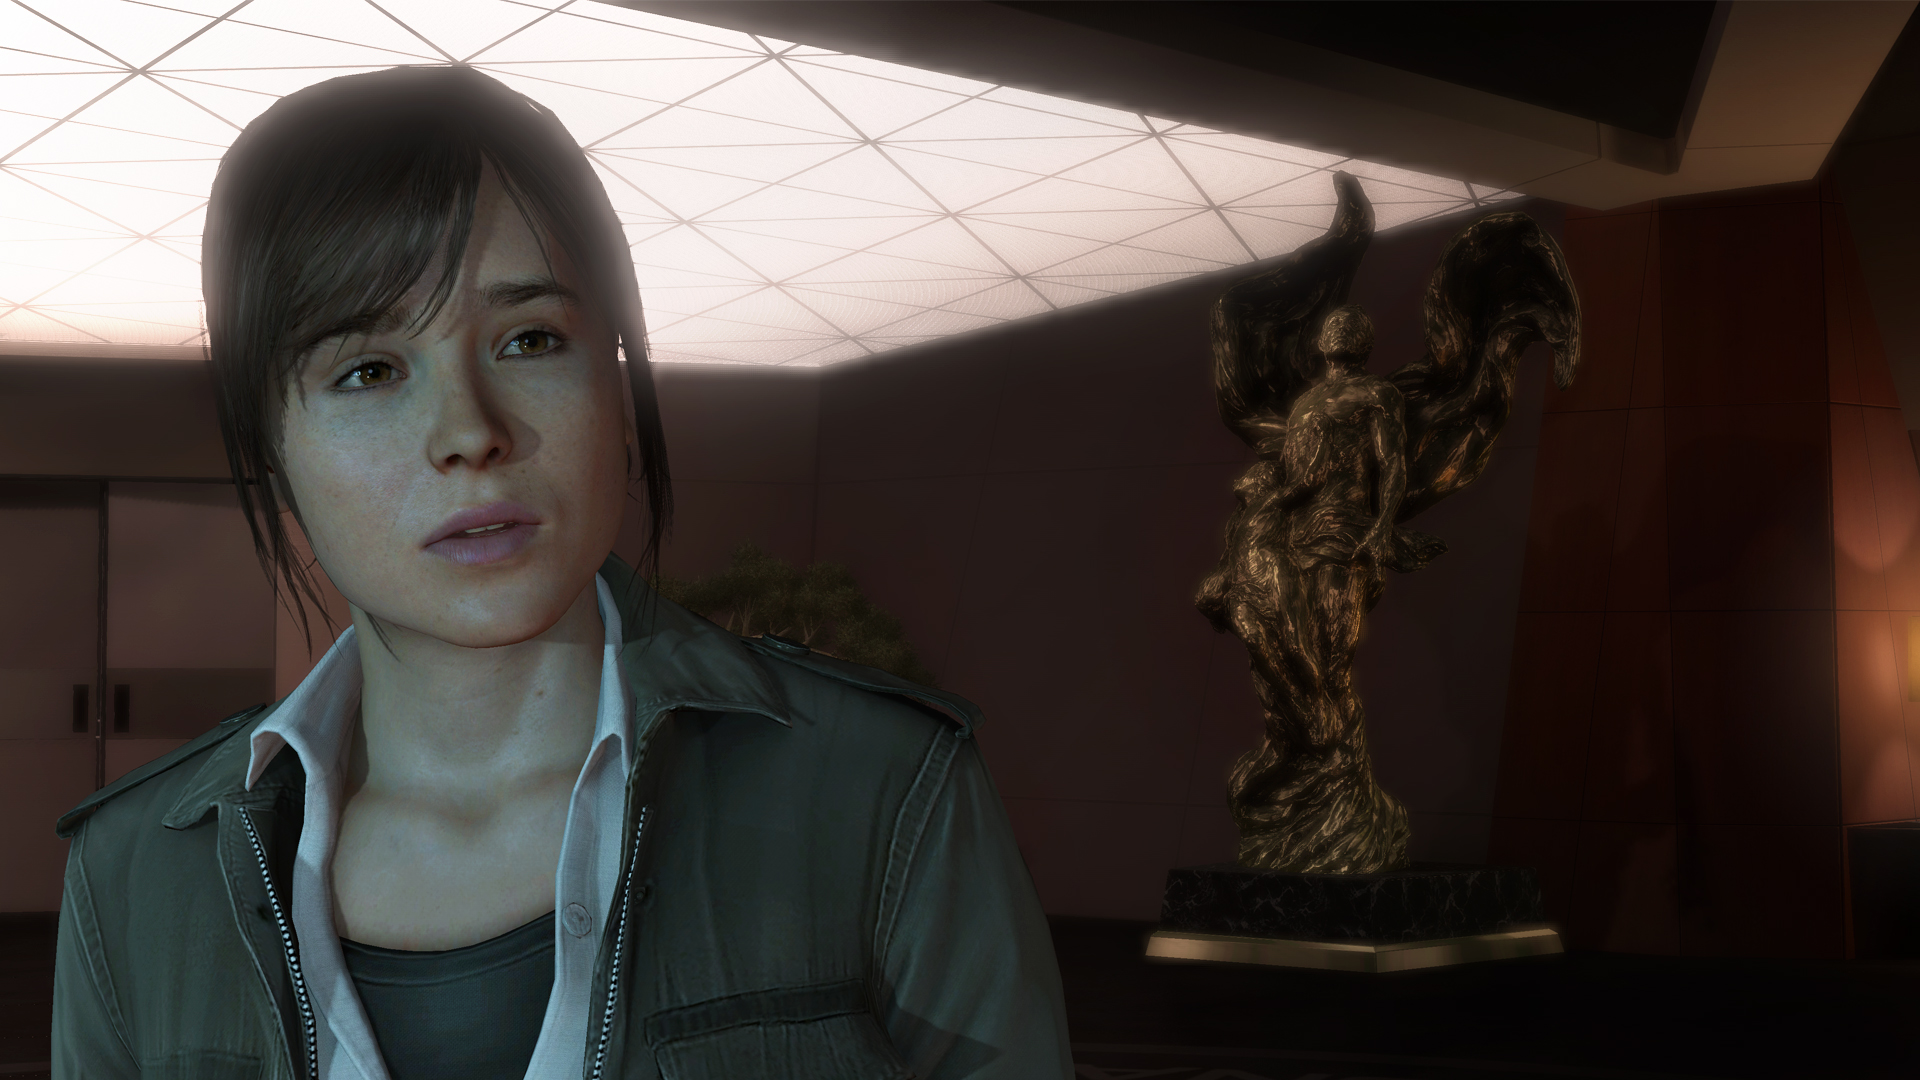 Ps4 Wallpaper Hd Beyond Two Souls Review Hand In Hand Polygon